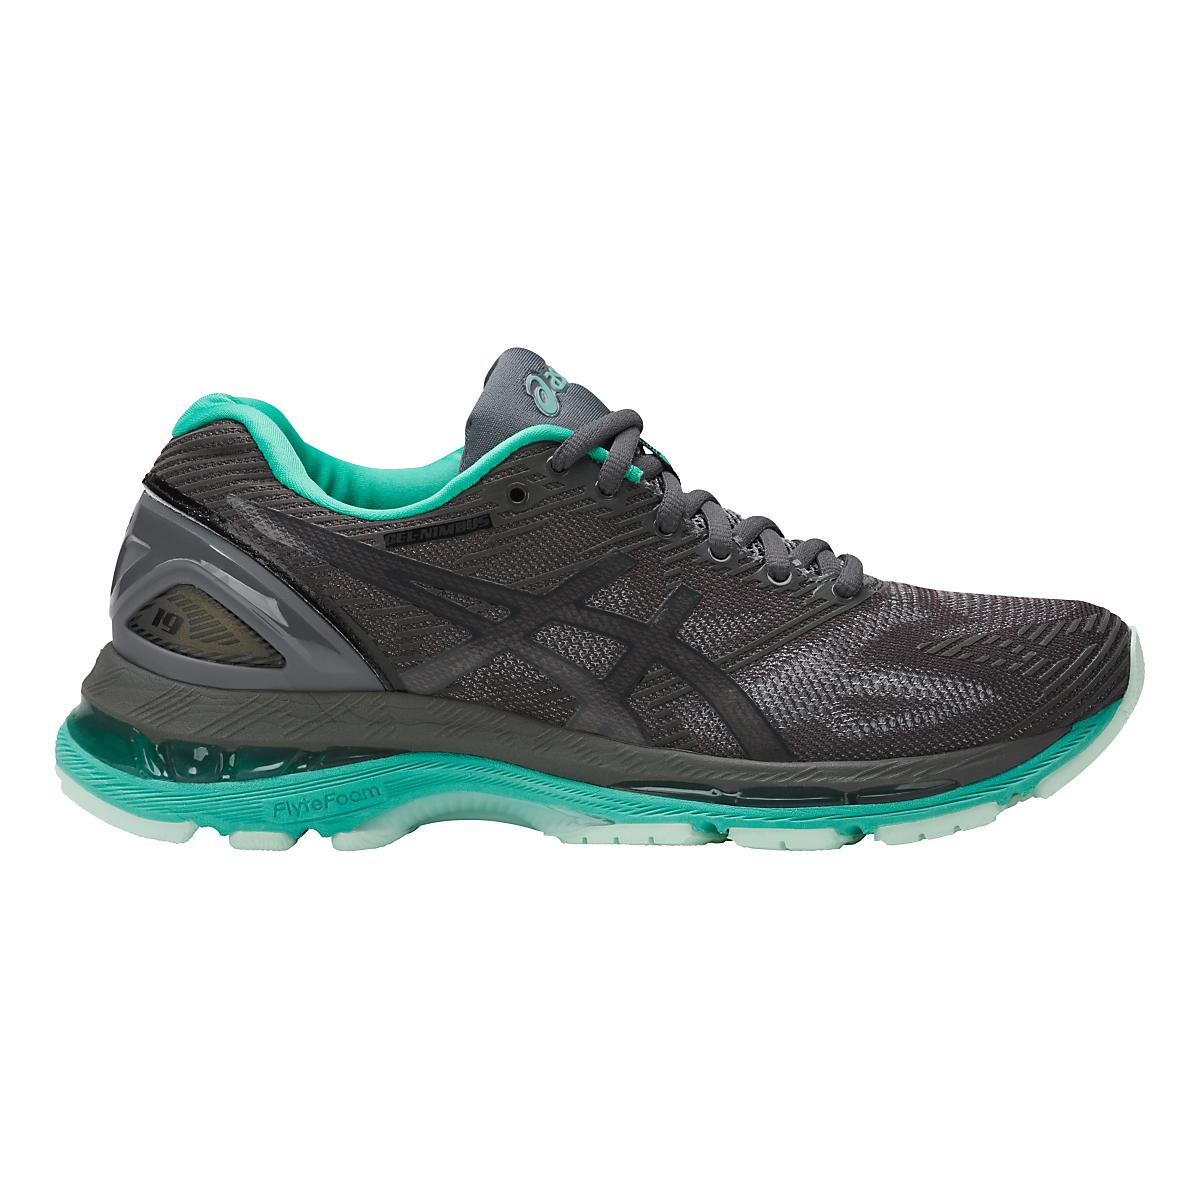 on sale 51fdd ba9c8 Women's GEL-Nimbus 19 Lite-Show